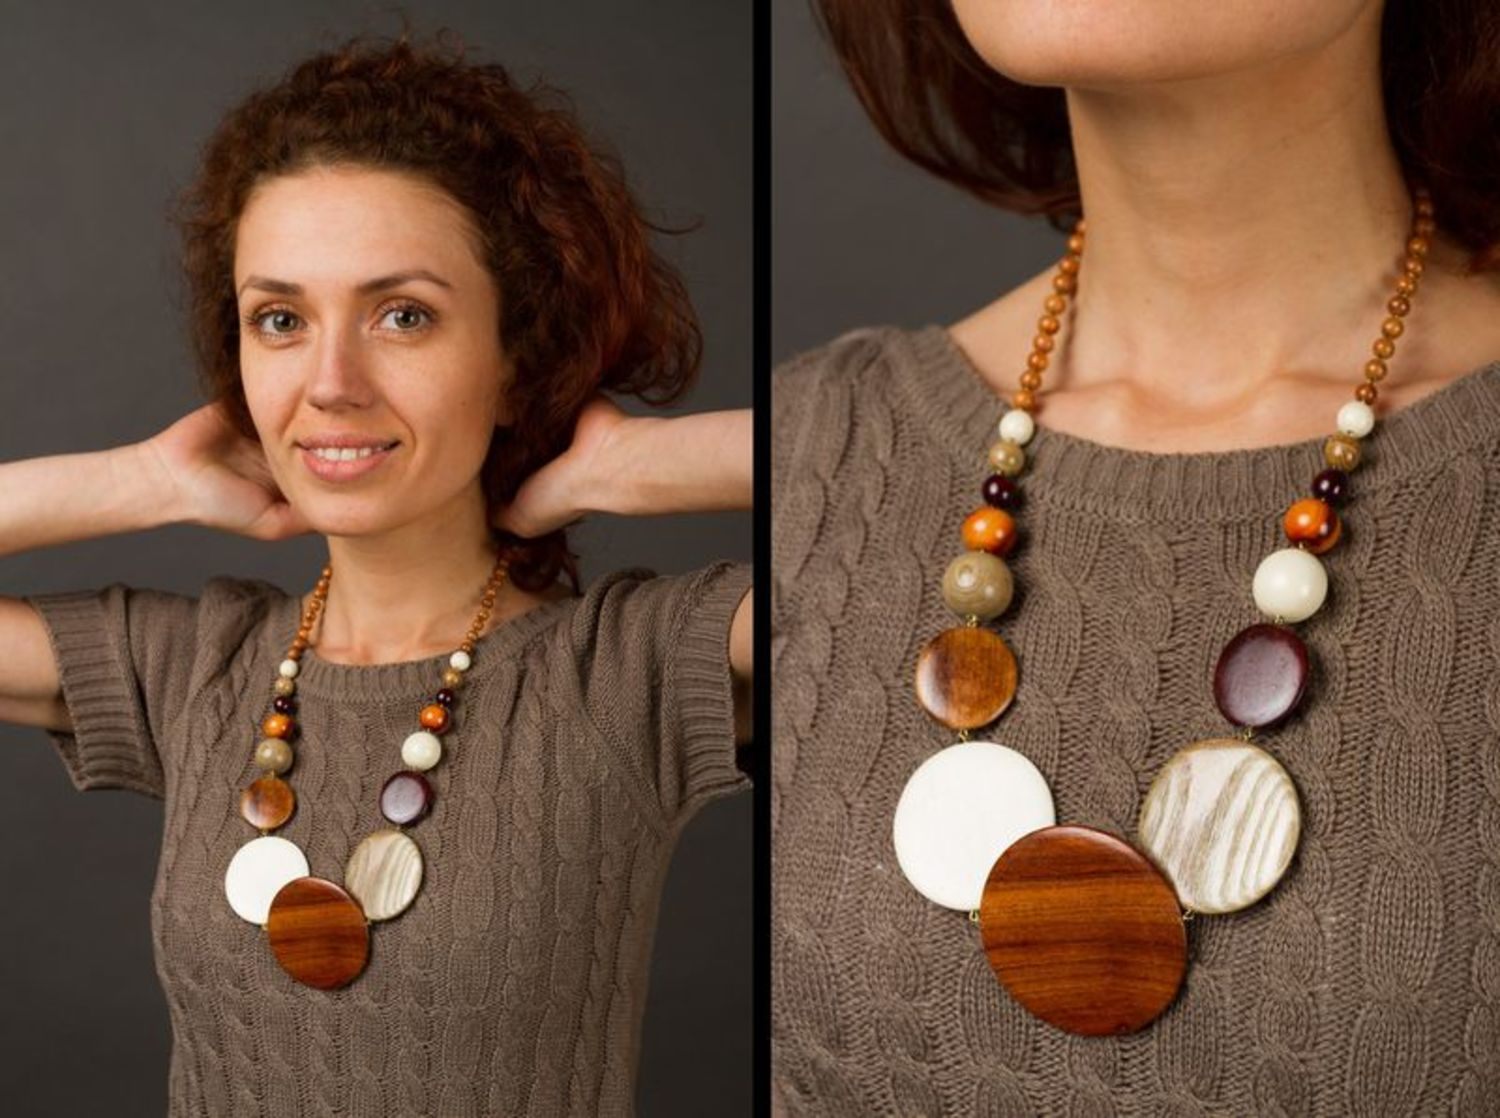 Handmade wooden necklace photo 2